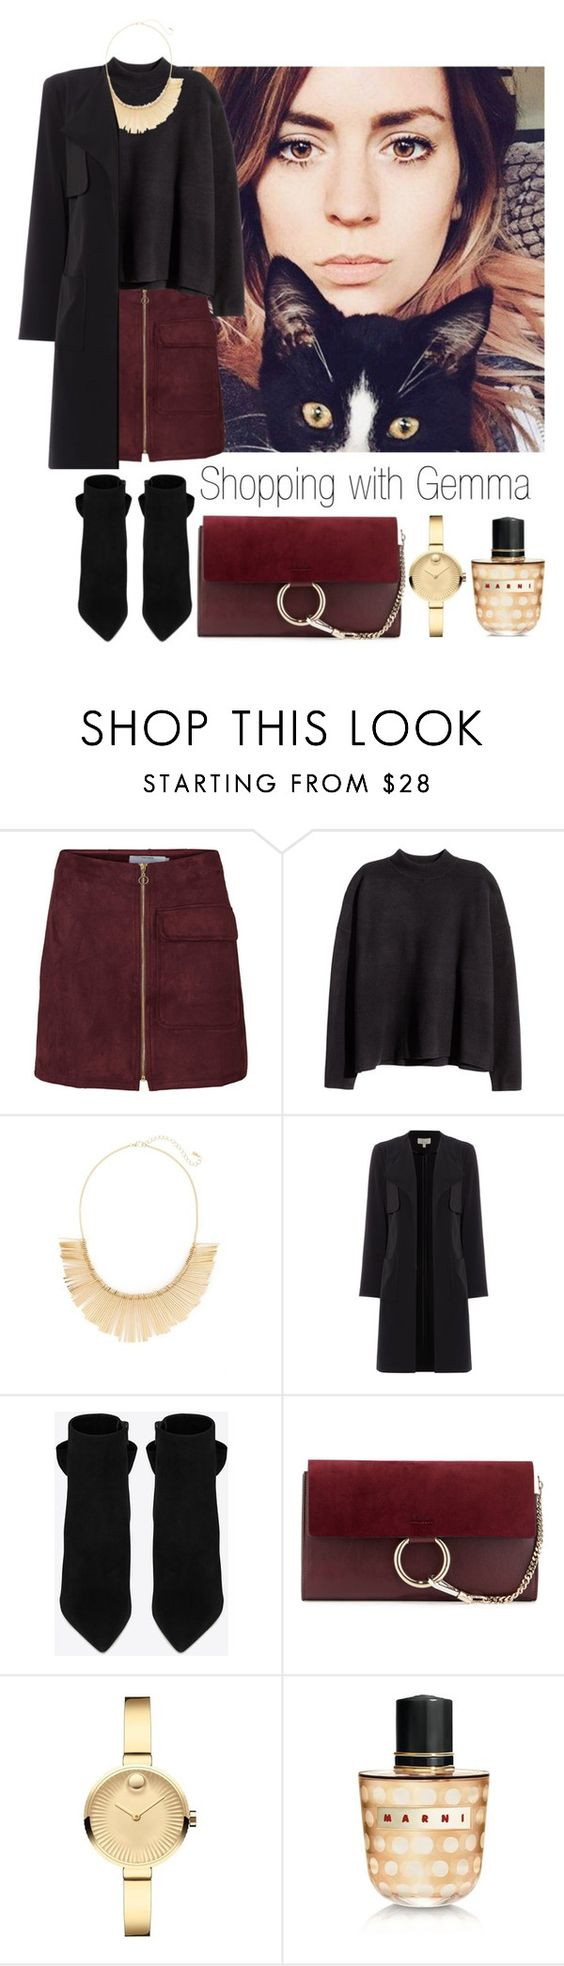 """Shopping with Gemma Styles"" by tonioverthetop ❤ liked on Polyvore featuring H&M, Panacea, Yves Saint Laurent, Chloé, Movado and Marni"